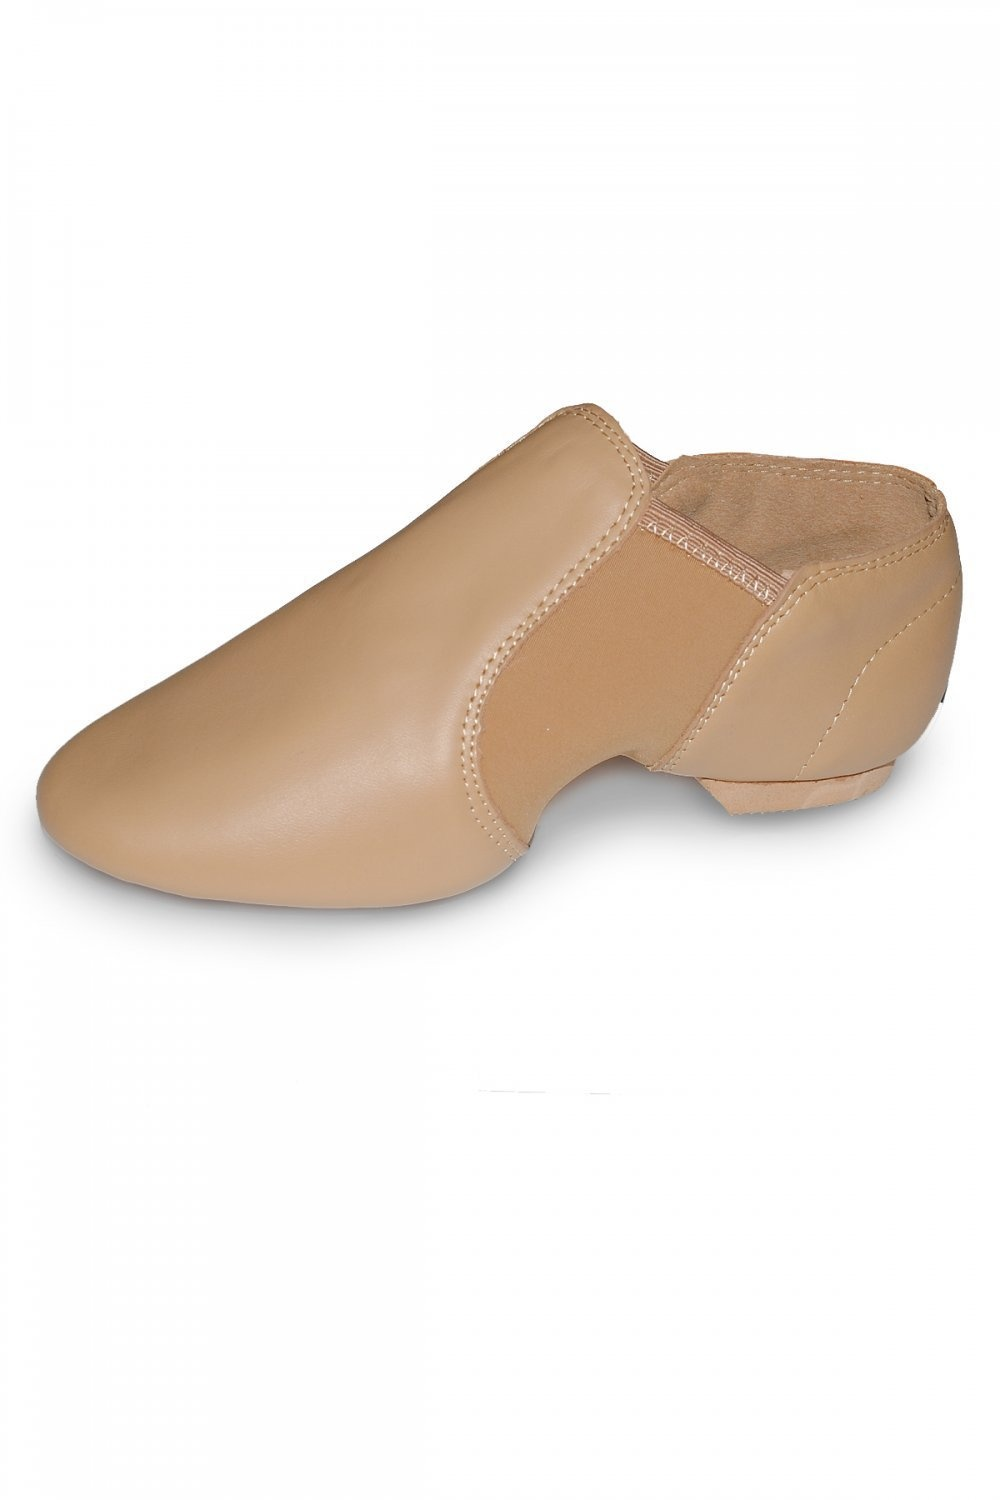 Roch Valley Leather Slip On Jazz Dance Shoes Flesh Colour Neoprene Arches Split Rubber Sole Child and Adult Sizes